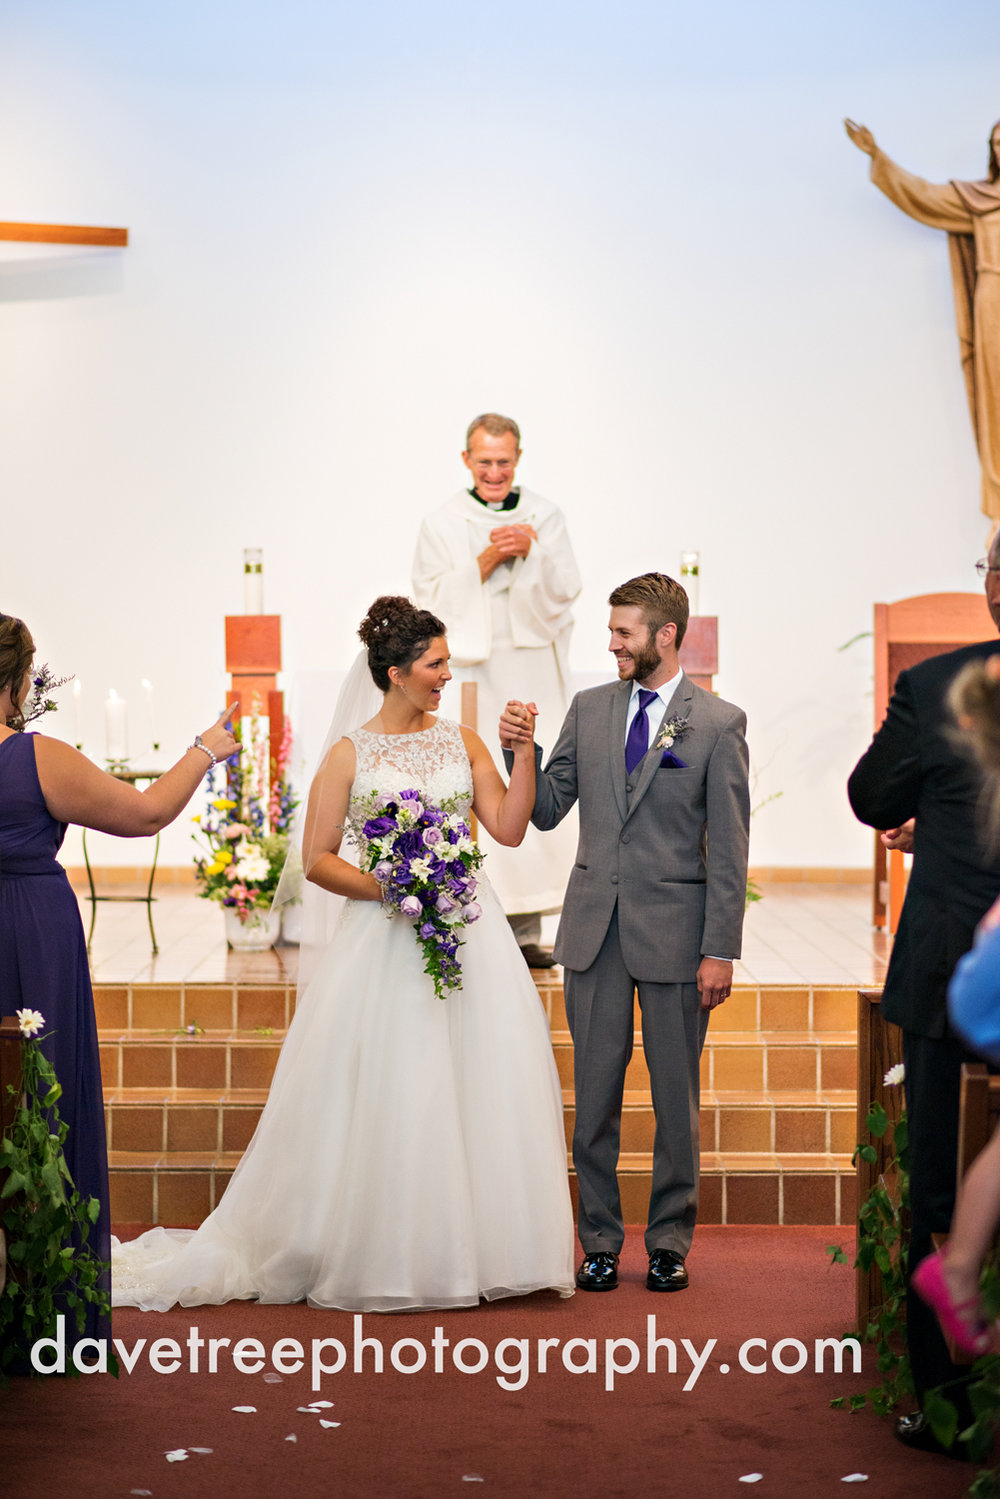 brooklyn_wedding_photographer_brooklyn_michigan_73.jpg